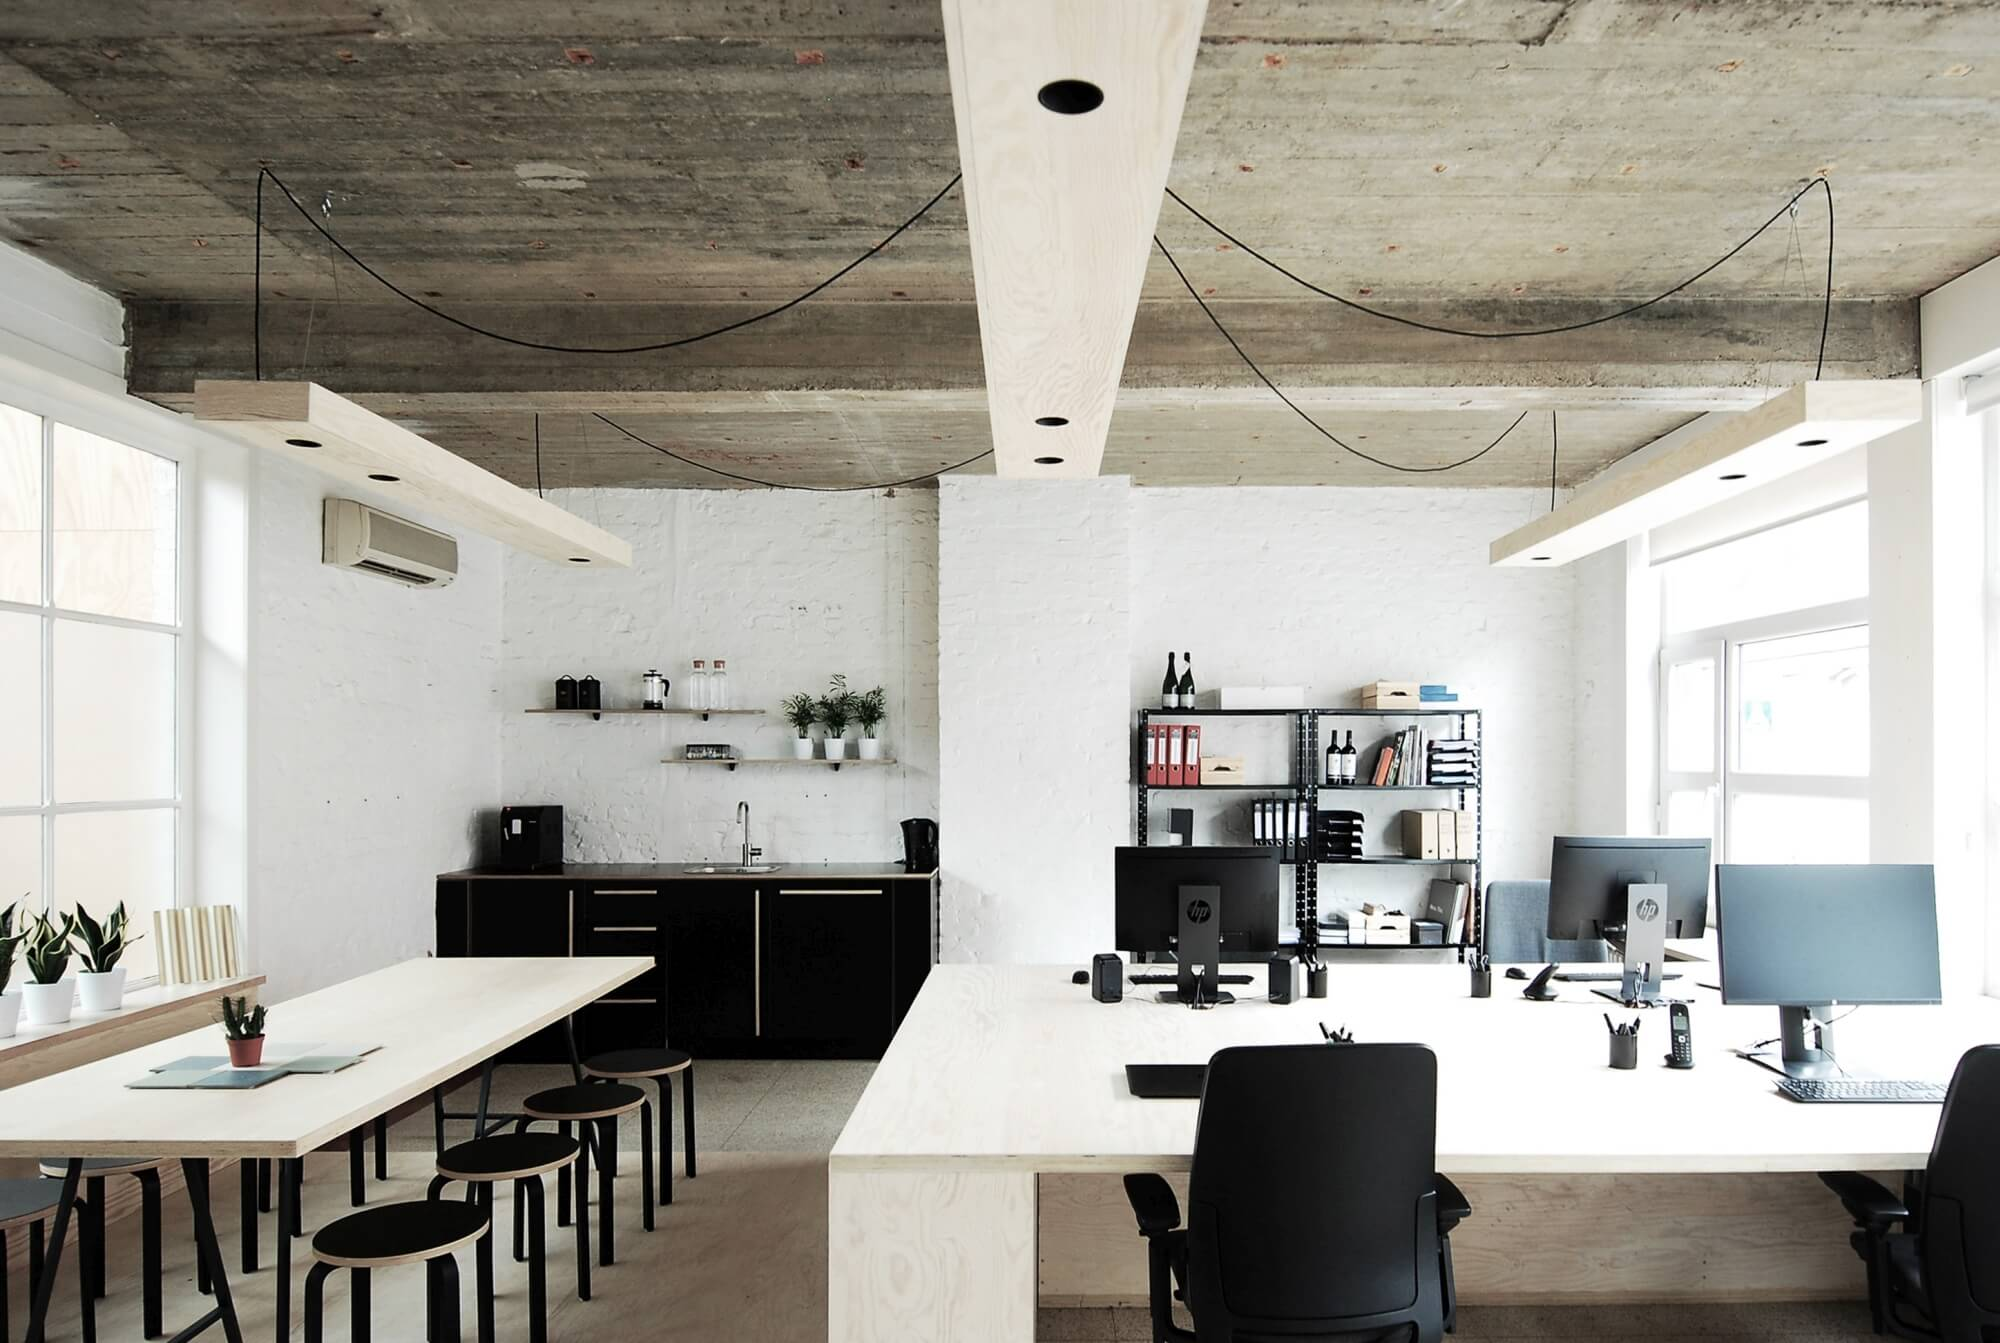 Architectural offices with white bricks, grey ceiling, and light plywood accents throughout.